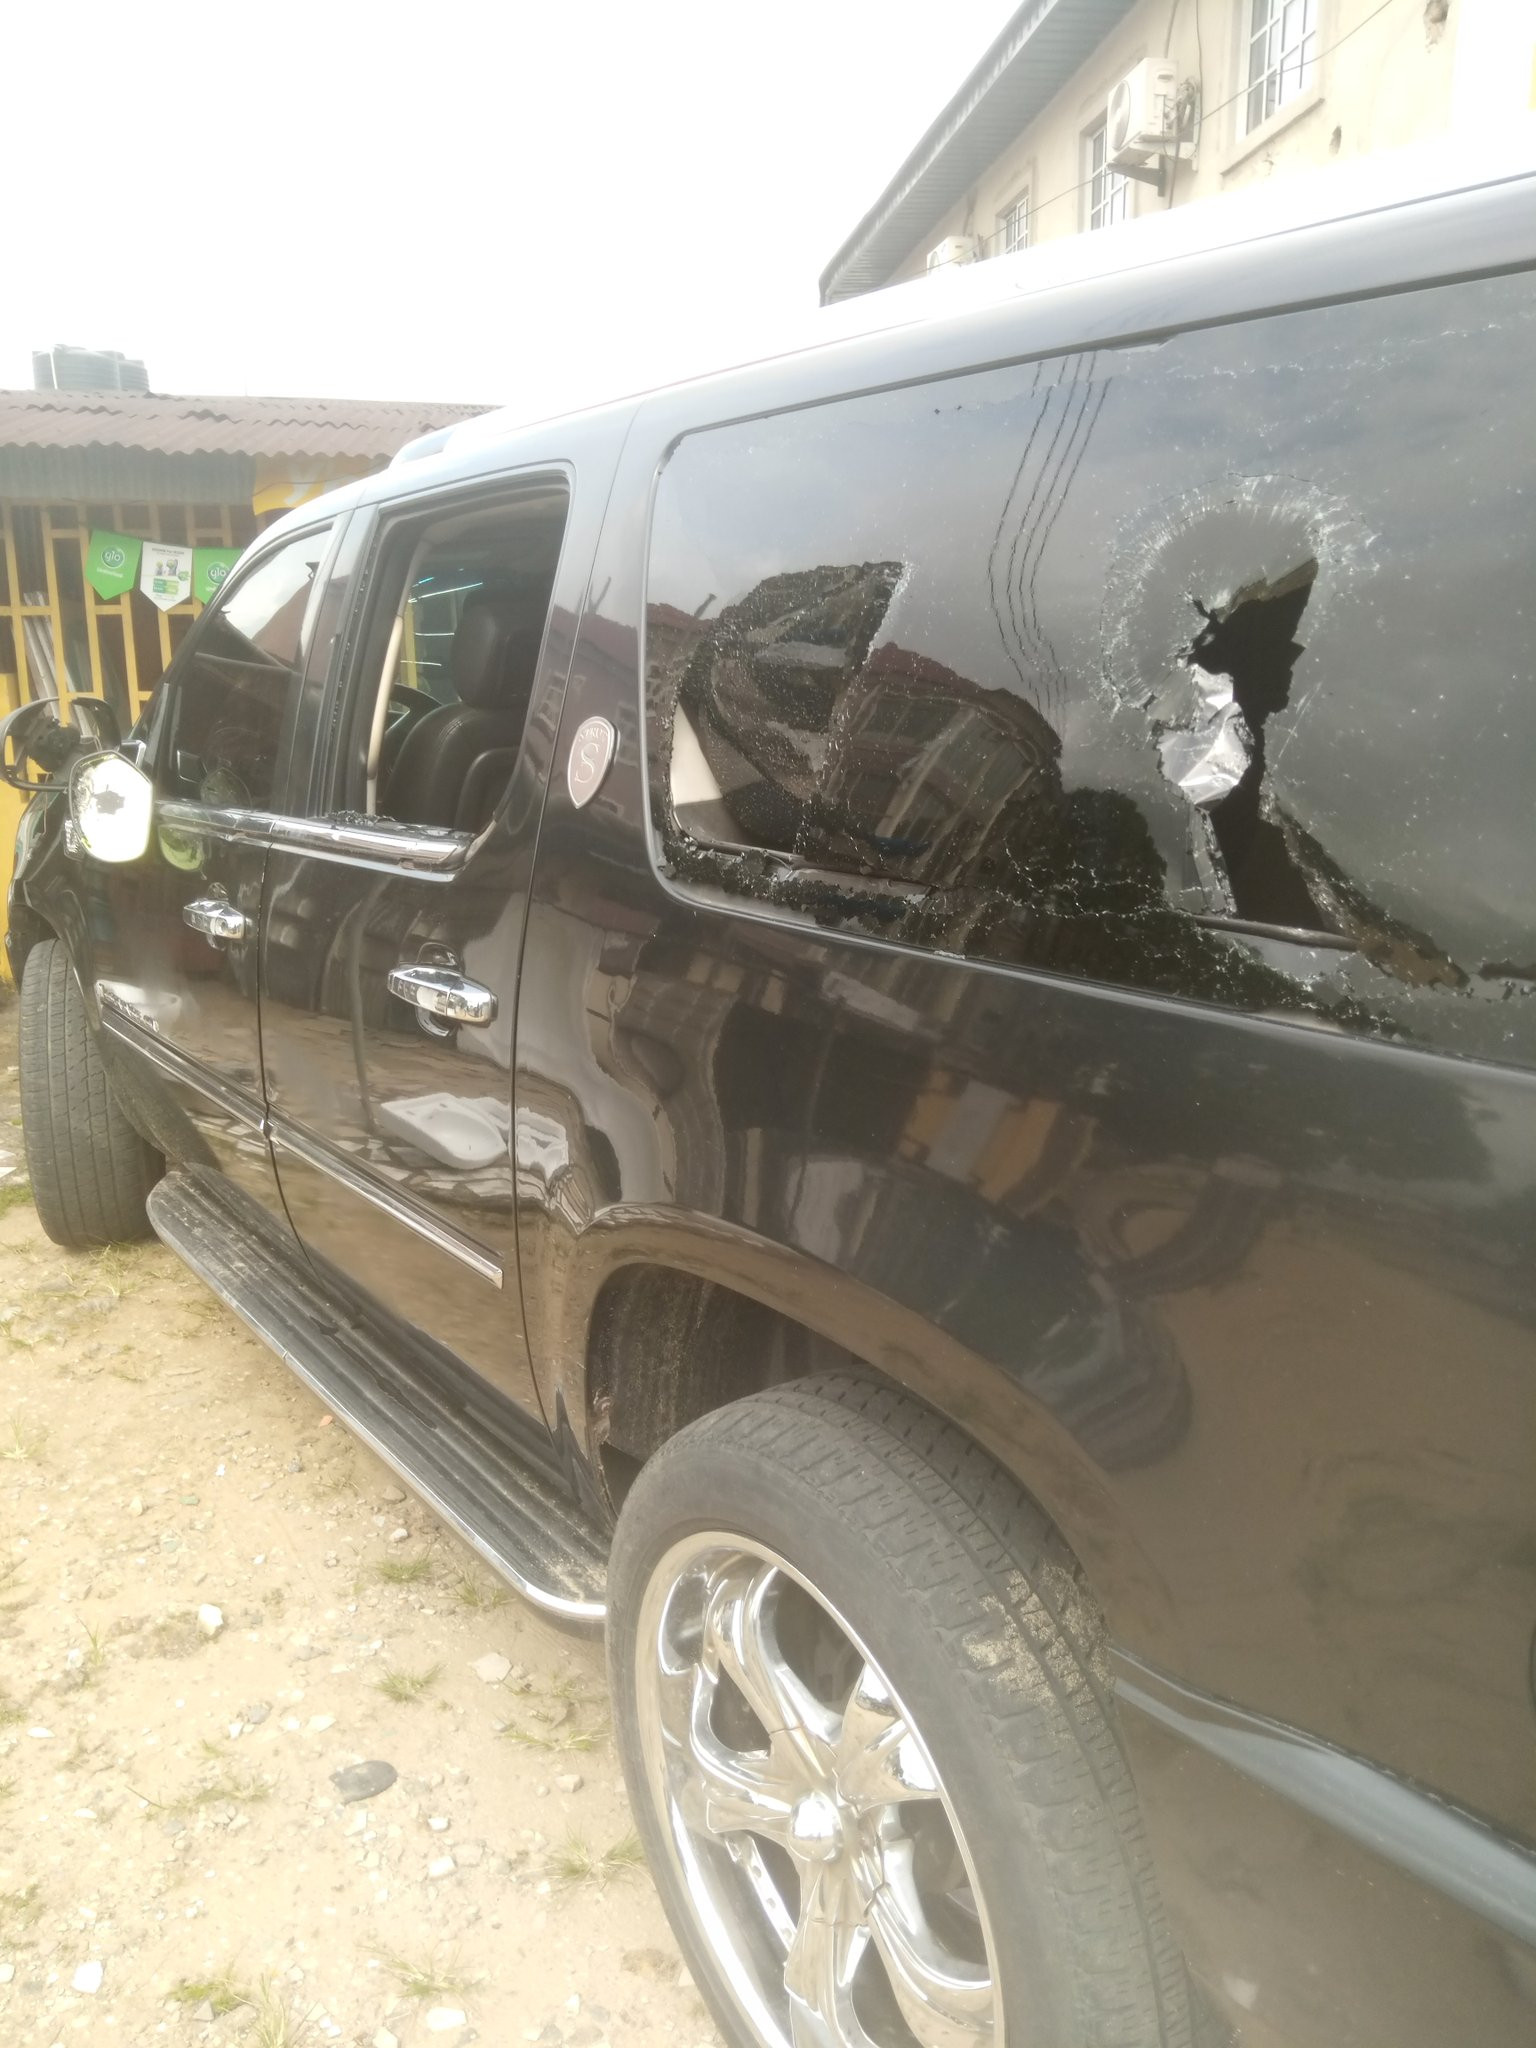 Actor Clem Ohameze allegedly attacked by hoodlums who robbed him